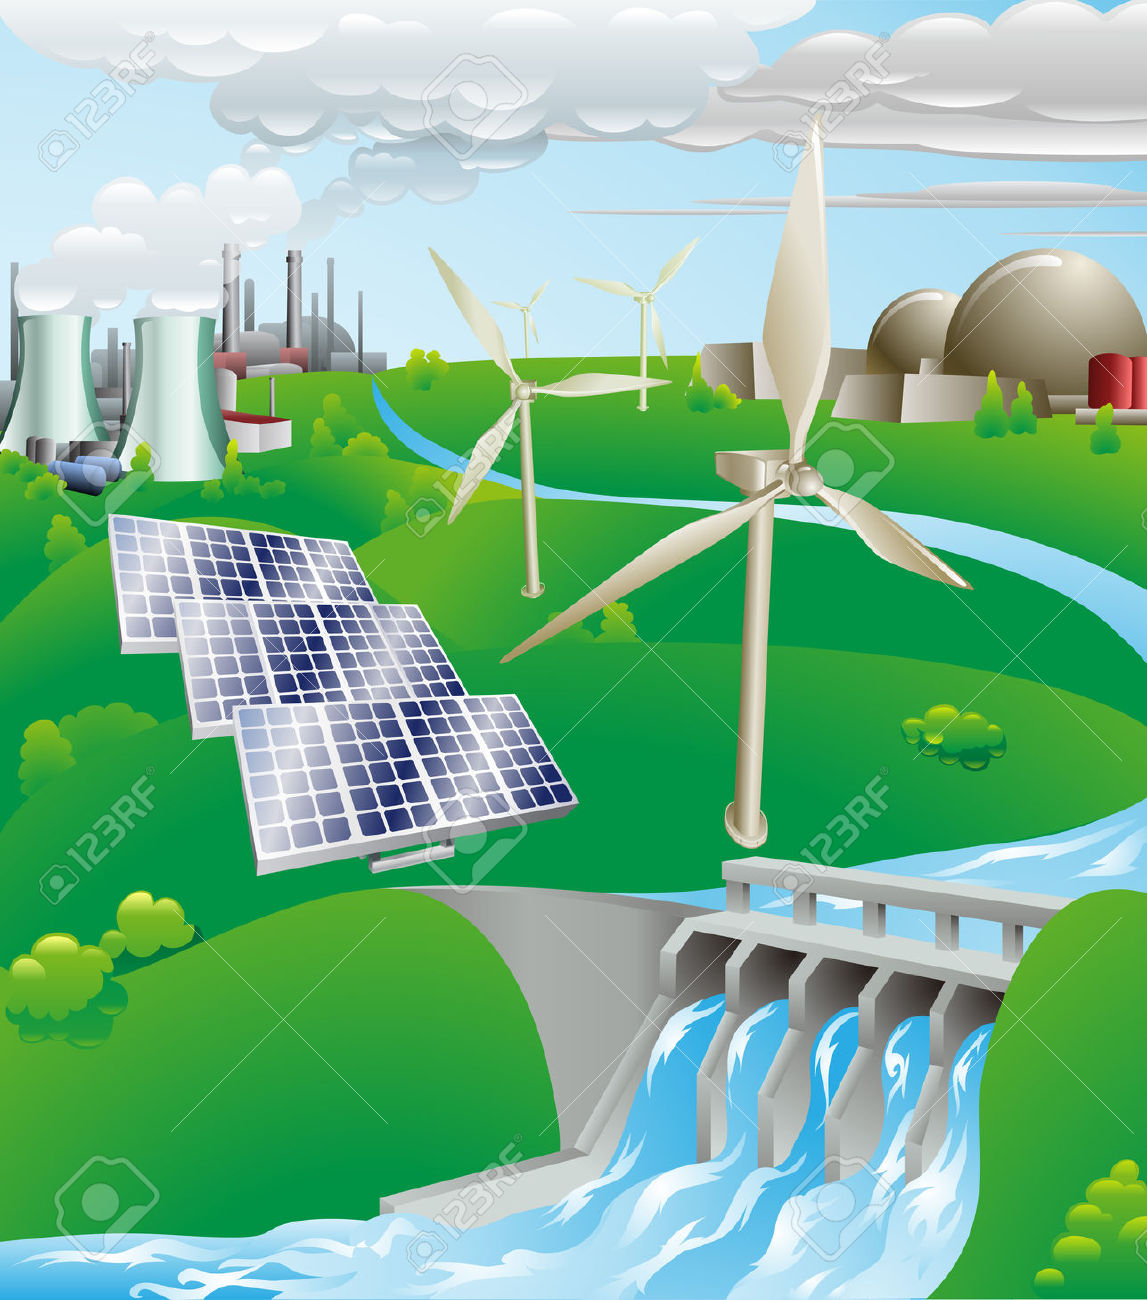 Wind Turbine clipart power plant #15